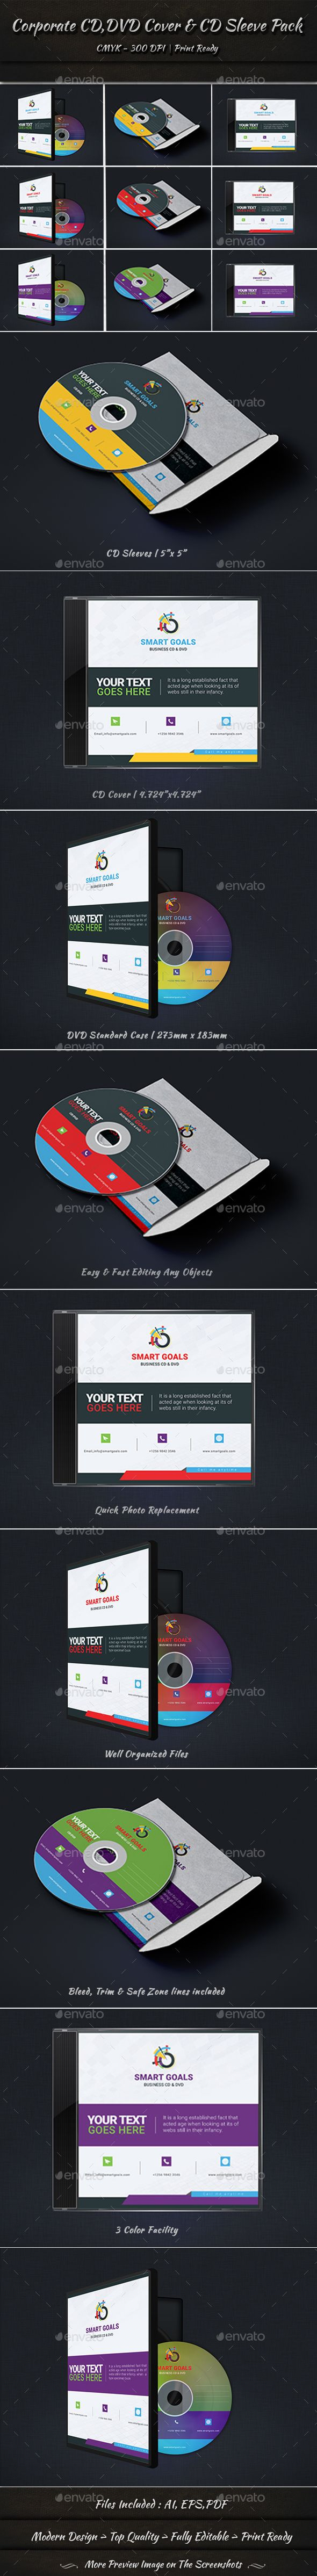 Corporate CD DVD Cover & CD Sleeve Pack - #CD & #DVD Artwork Print #Templates Download here: https://graphicriver.net/item/corporate-cd-dvd-cover-cd-sleeve-pack/19378910?ref=alena994